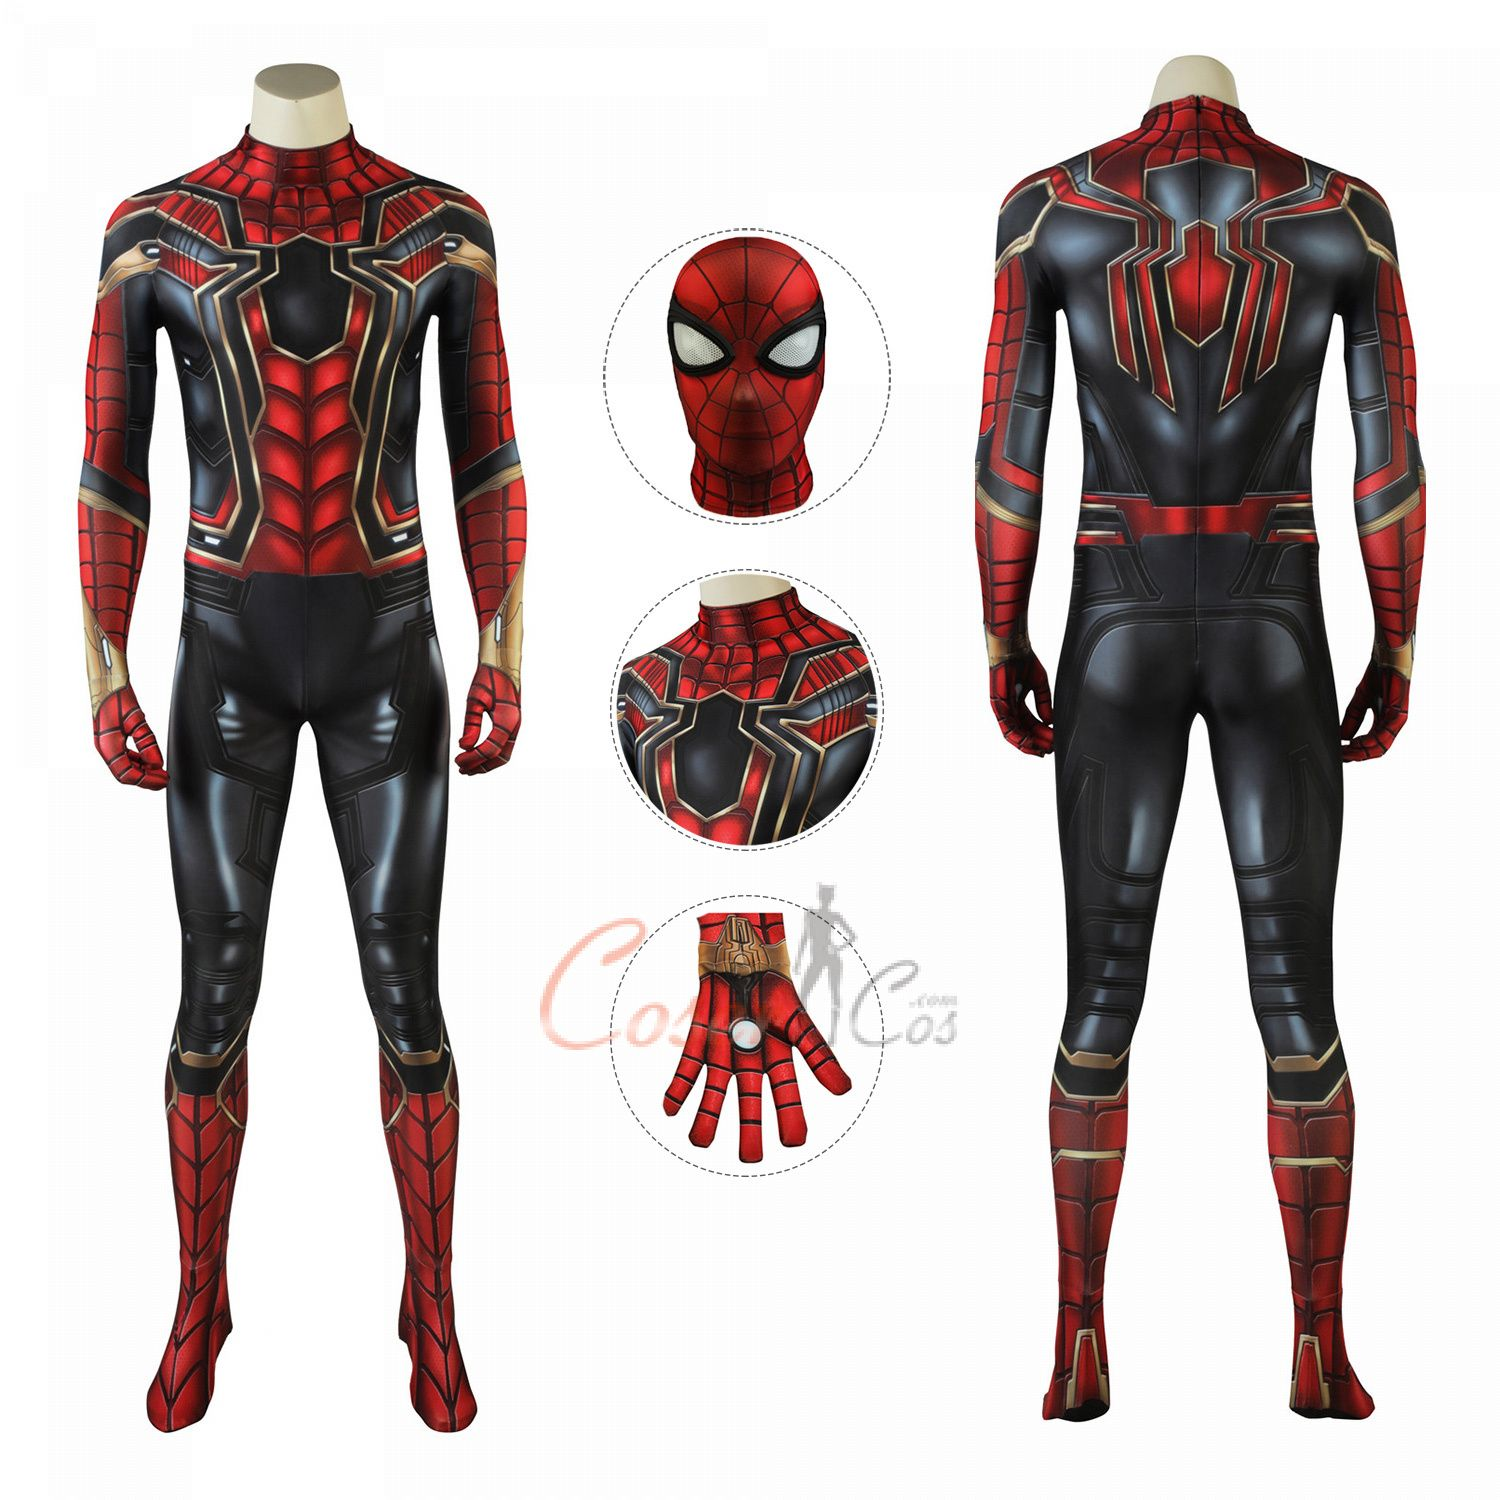 Iron Spider Man Costume Avengers Infinity War Cosplay Peter